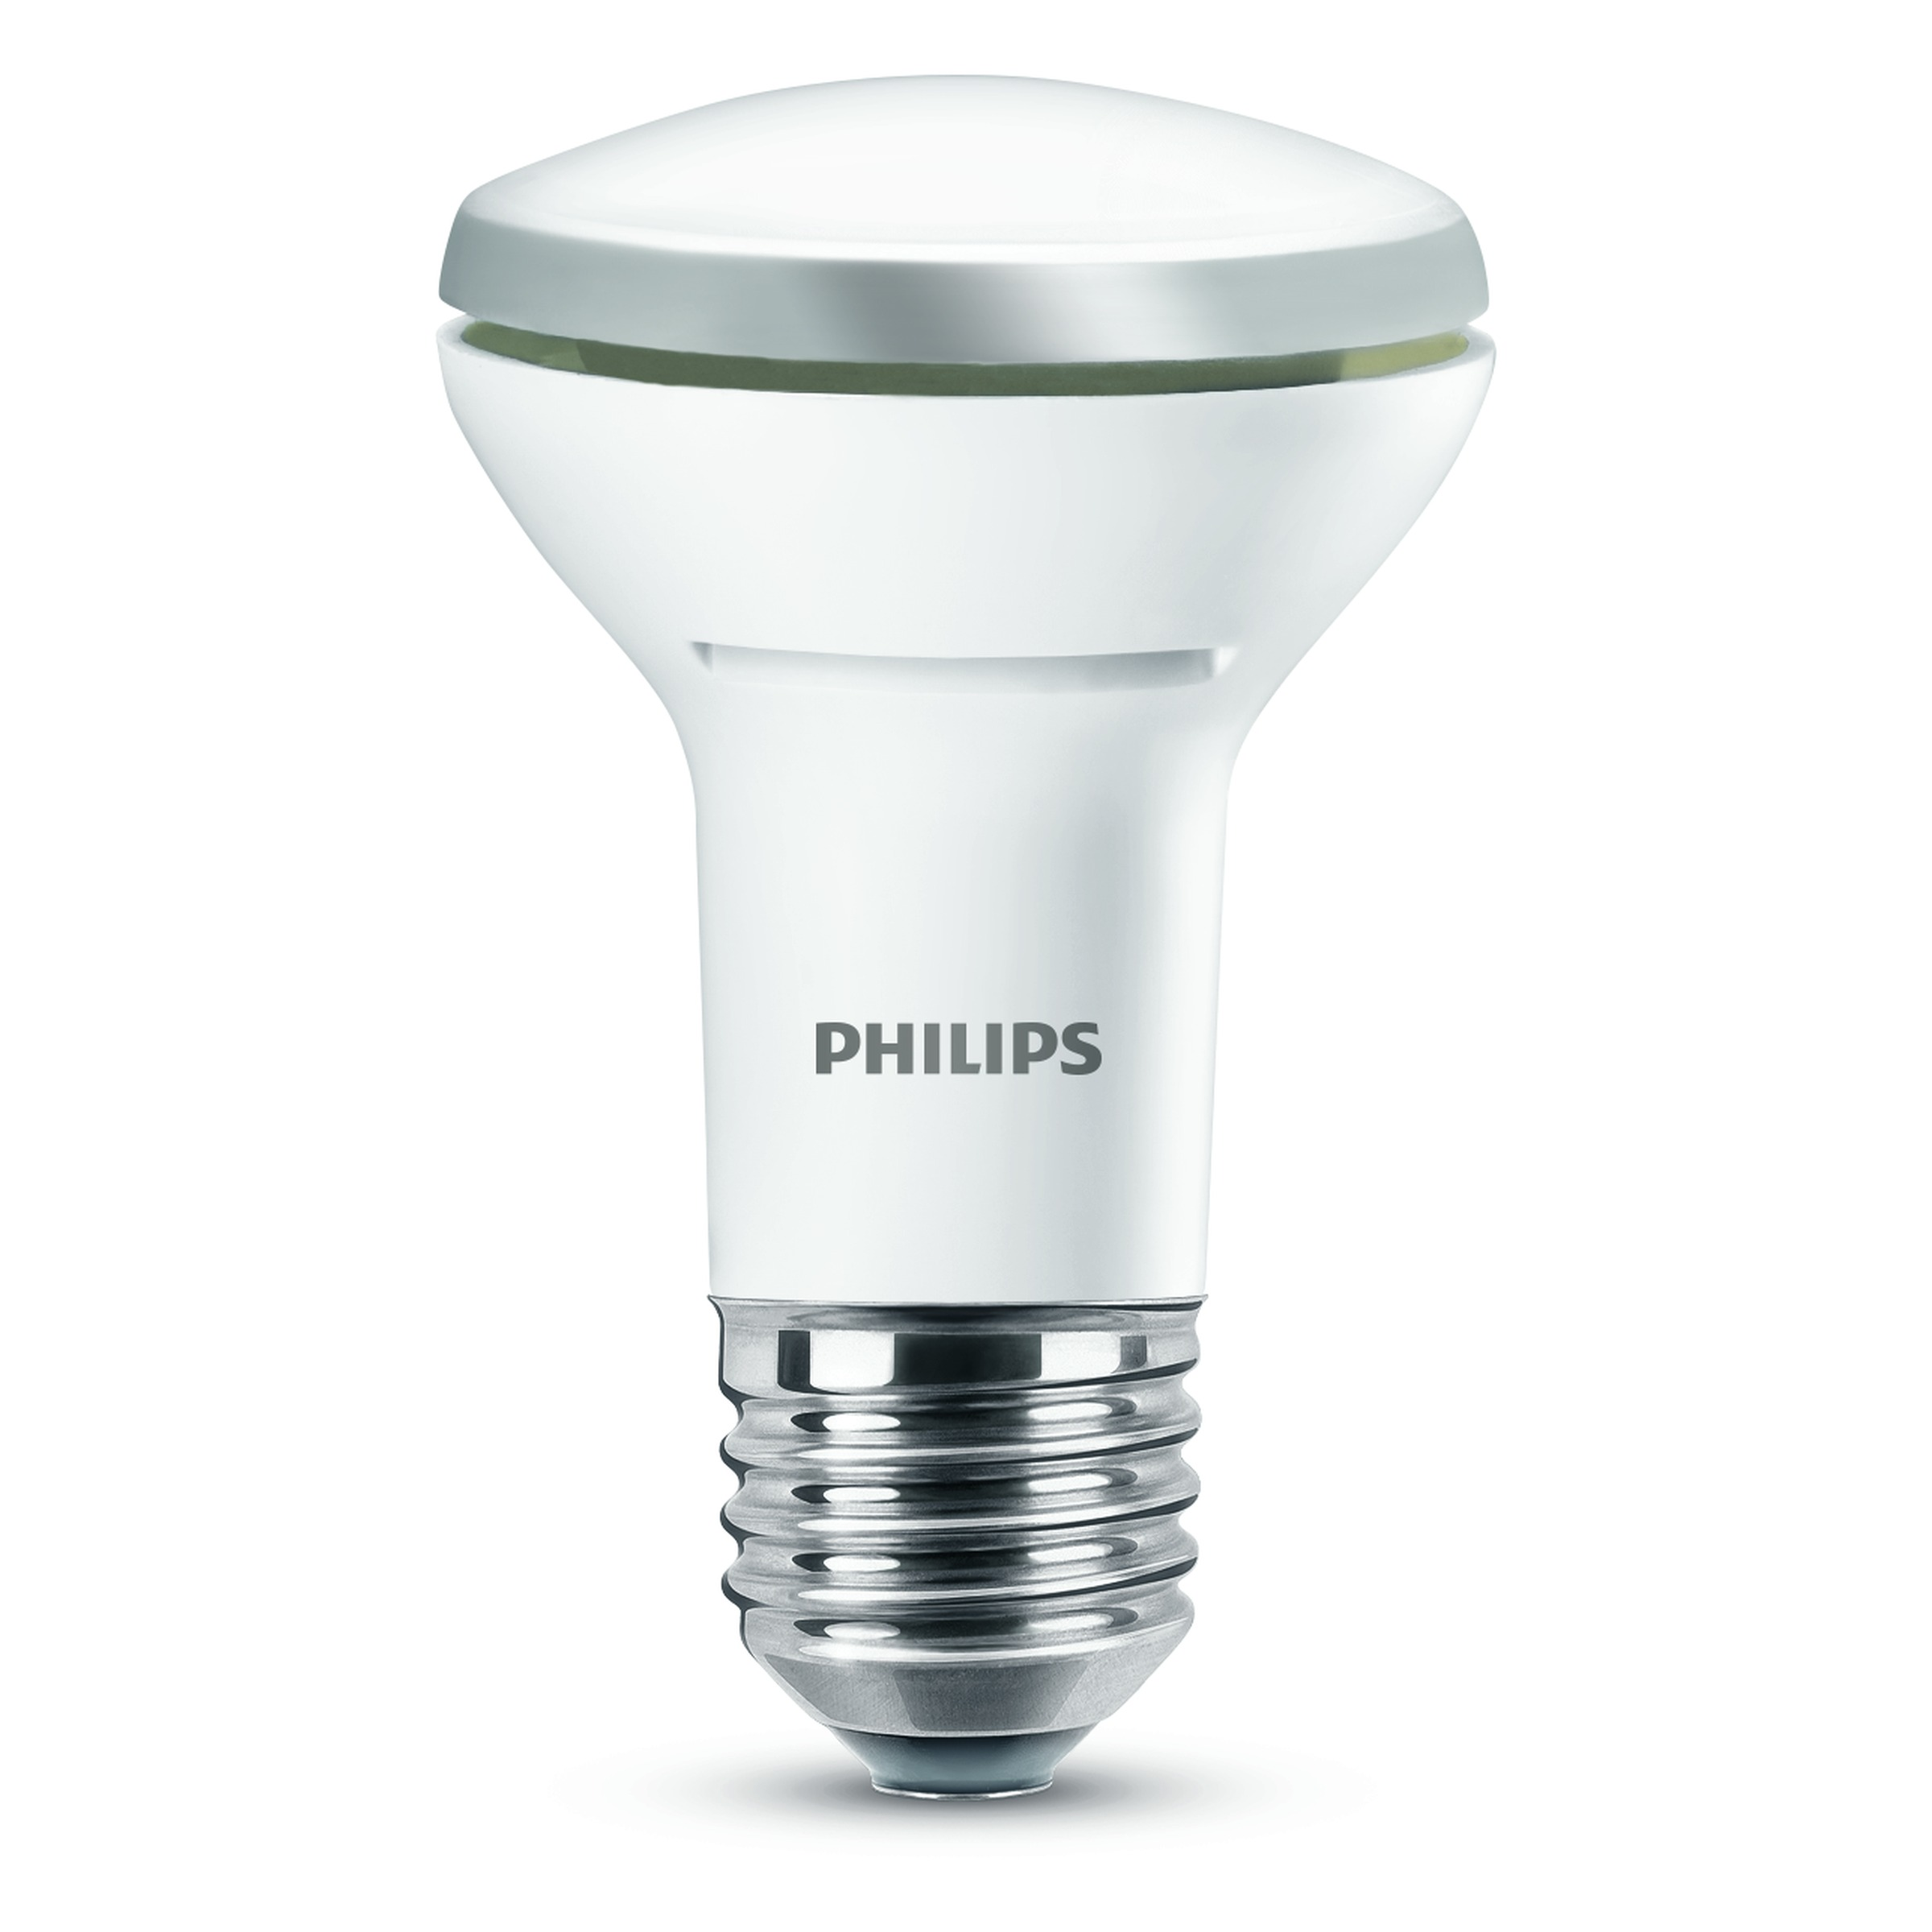 philips led reflectorlamp e27 345 lumen 5 7w 60w dimbaar alle lampen lampen verlichting. Black Bedroom Furniture Sets. Home Design Ideas